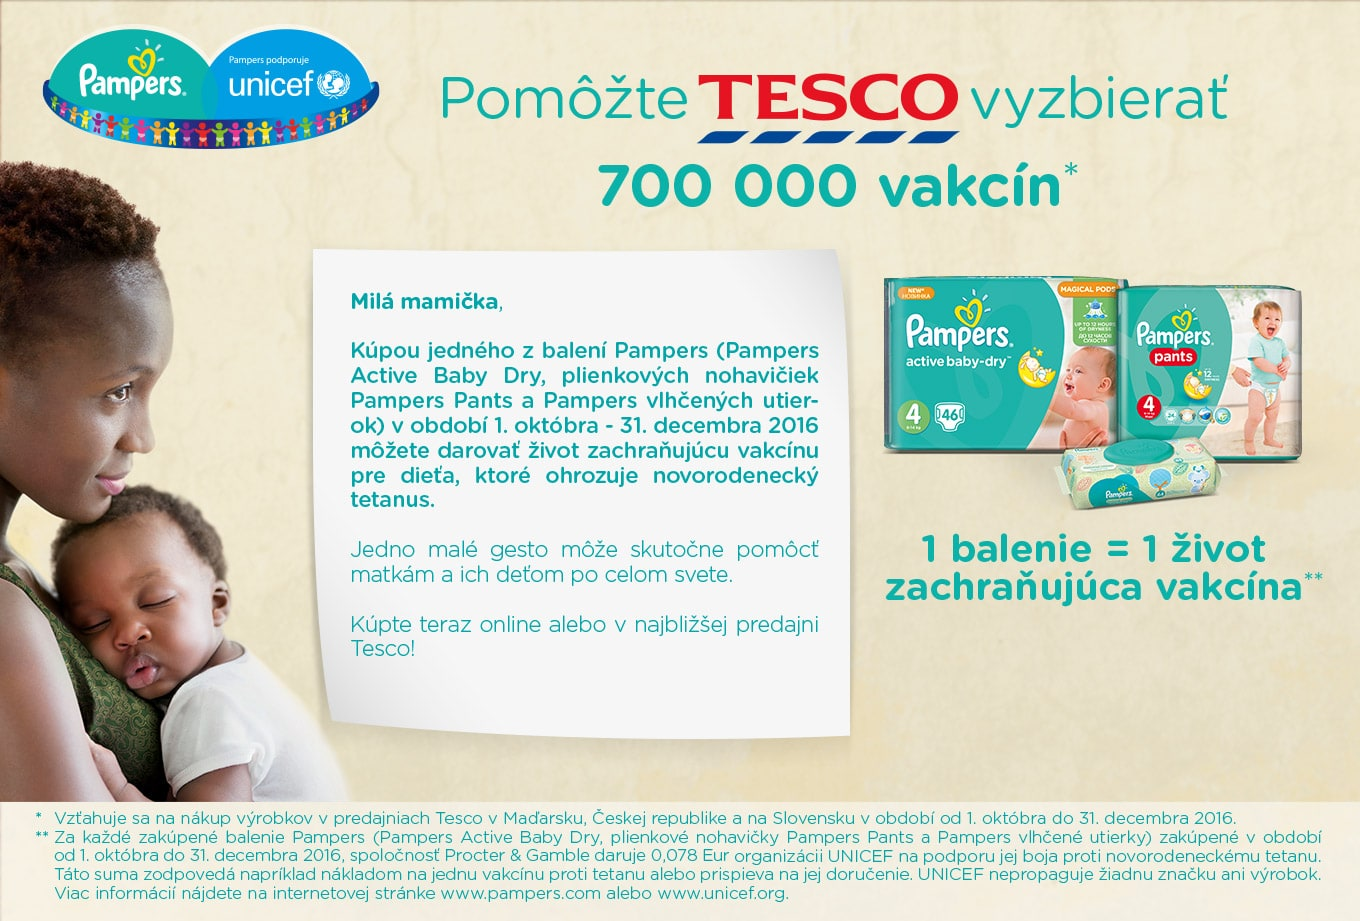 Unicef Pampers